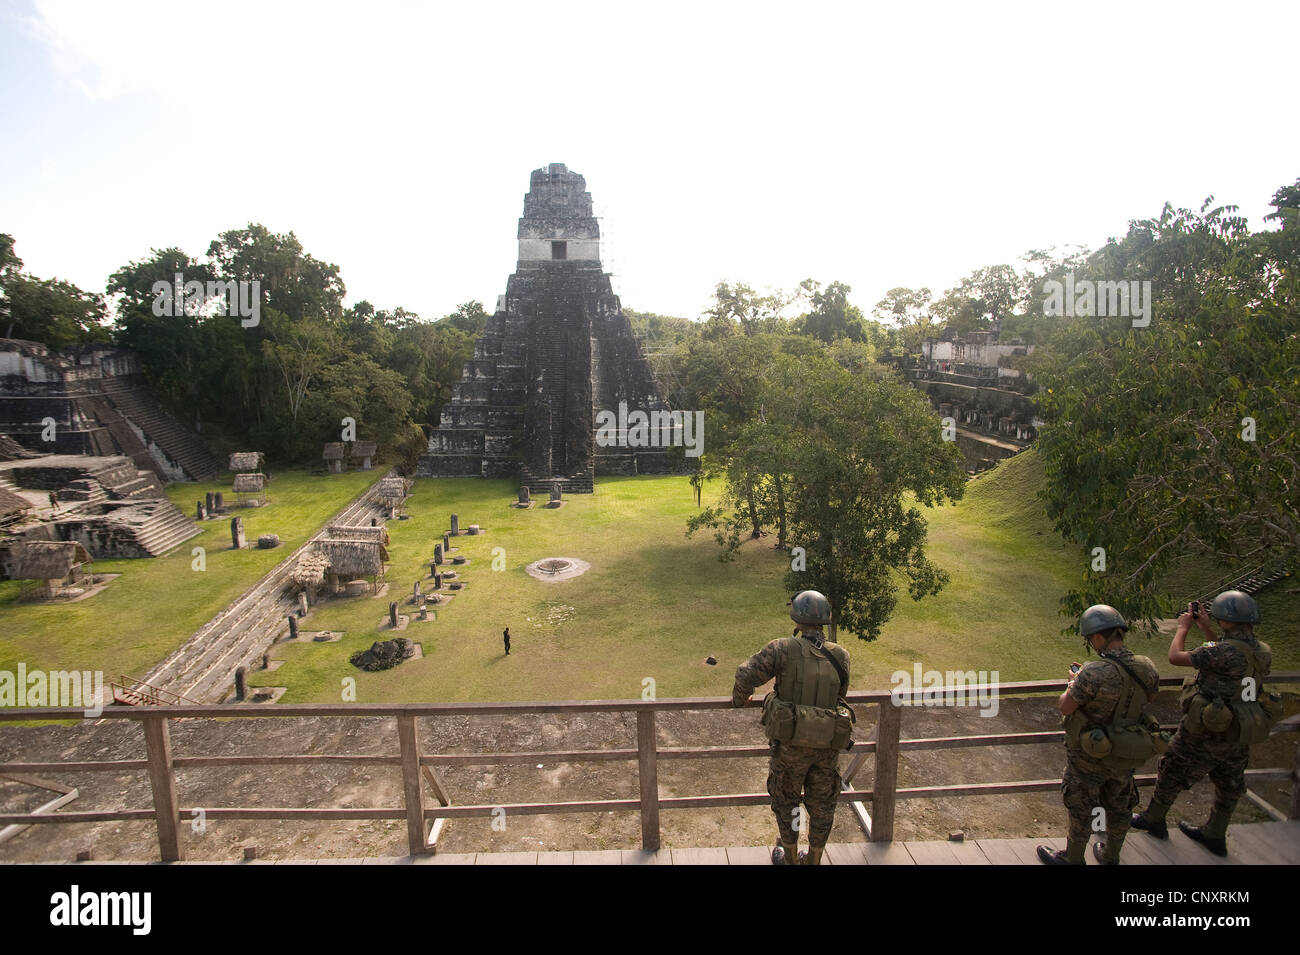 Soldiers guard tourists at Tikal National Park, Guatemala - Stock Image